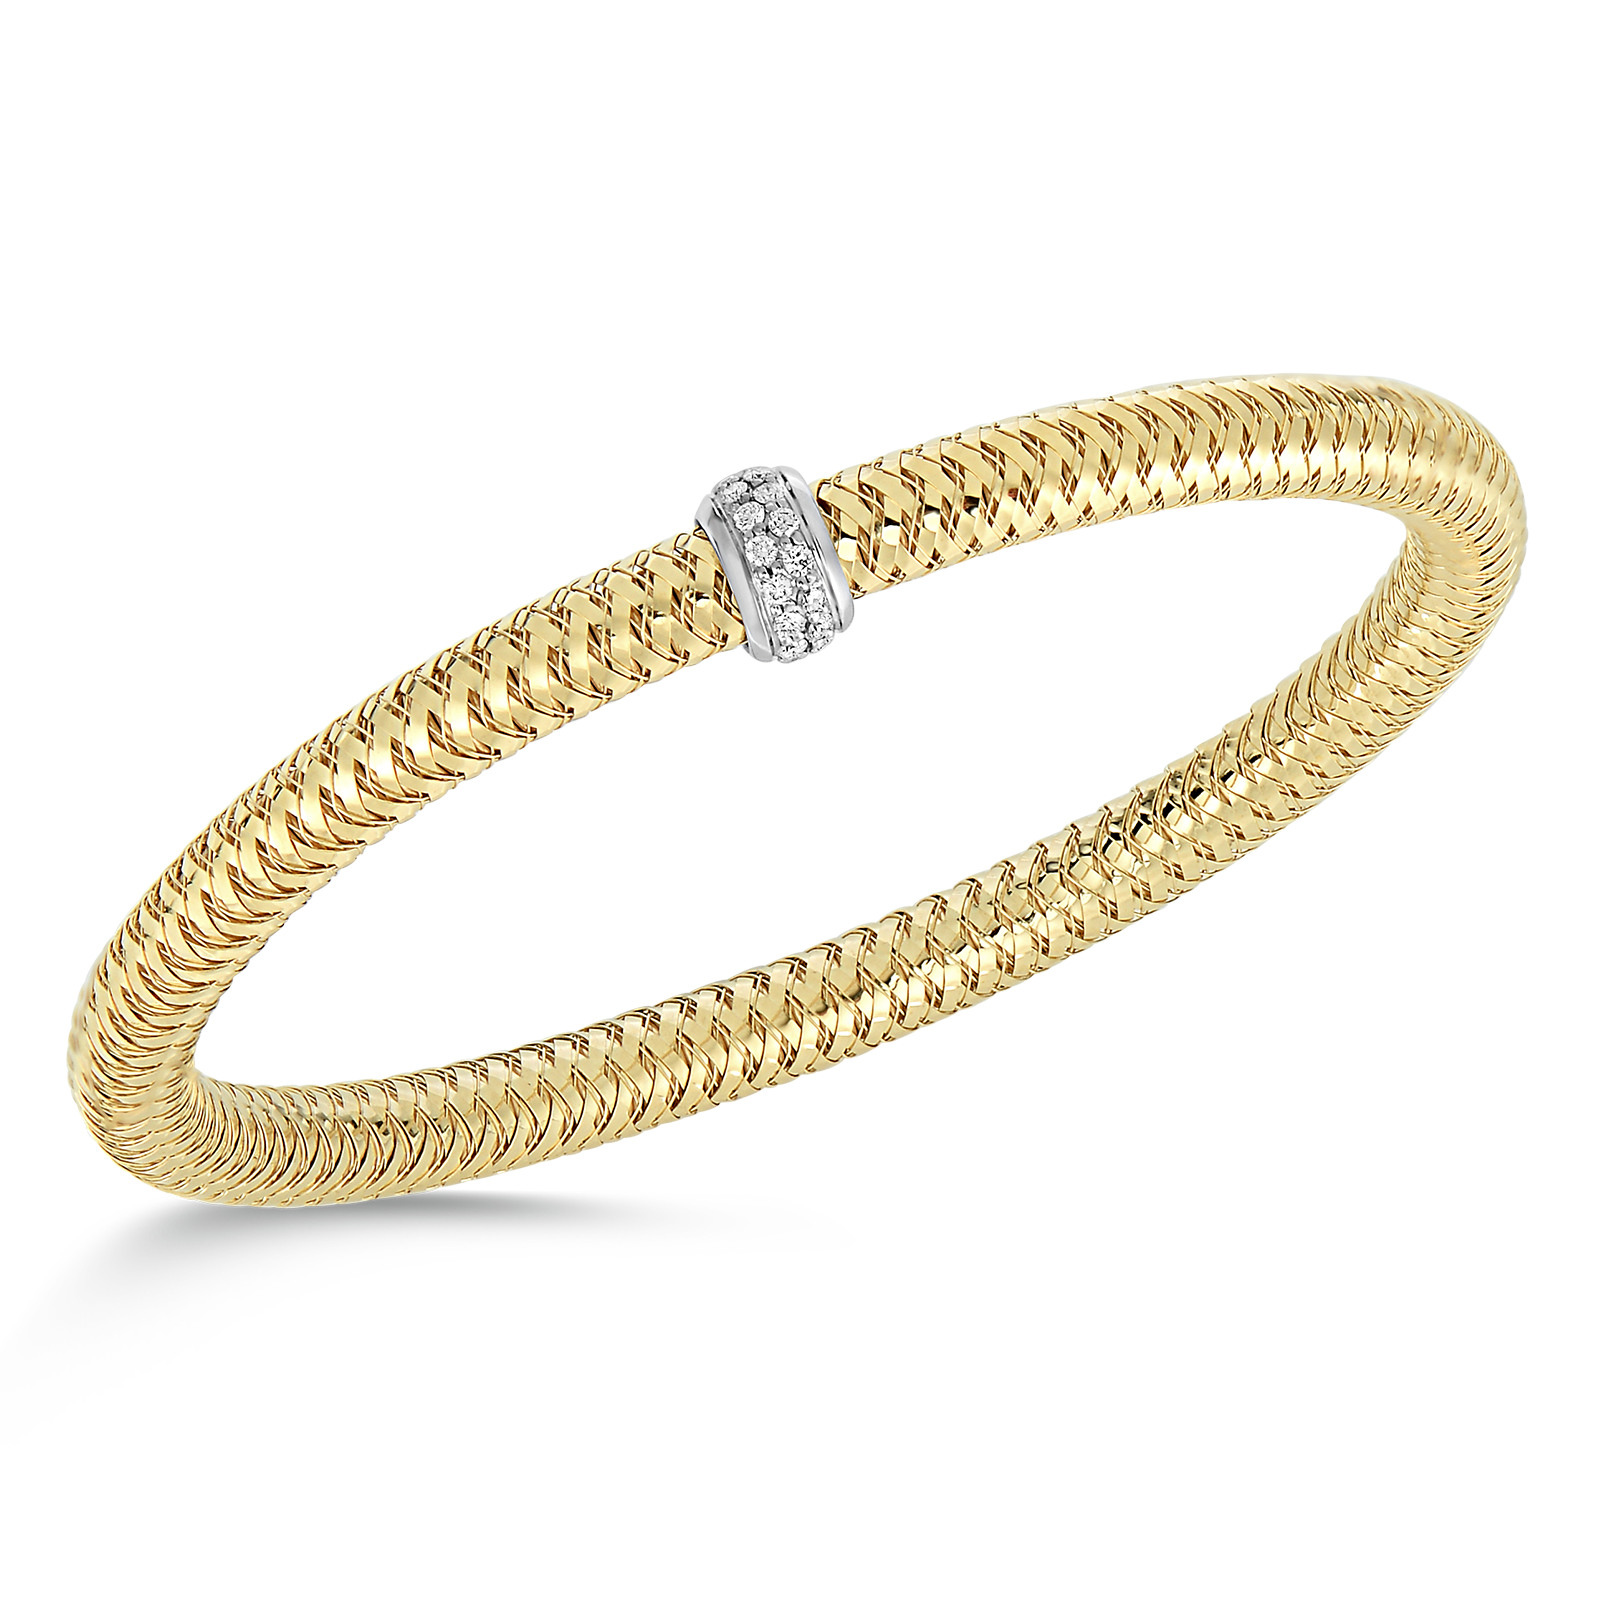 FLEXIBLE BRACELET WITH DIAMOND STATION